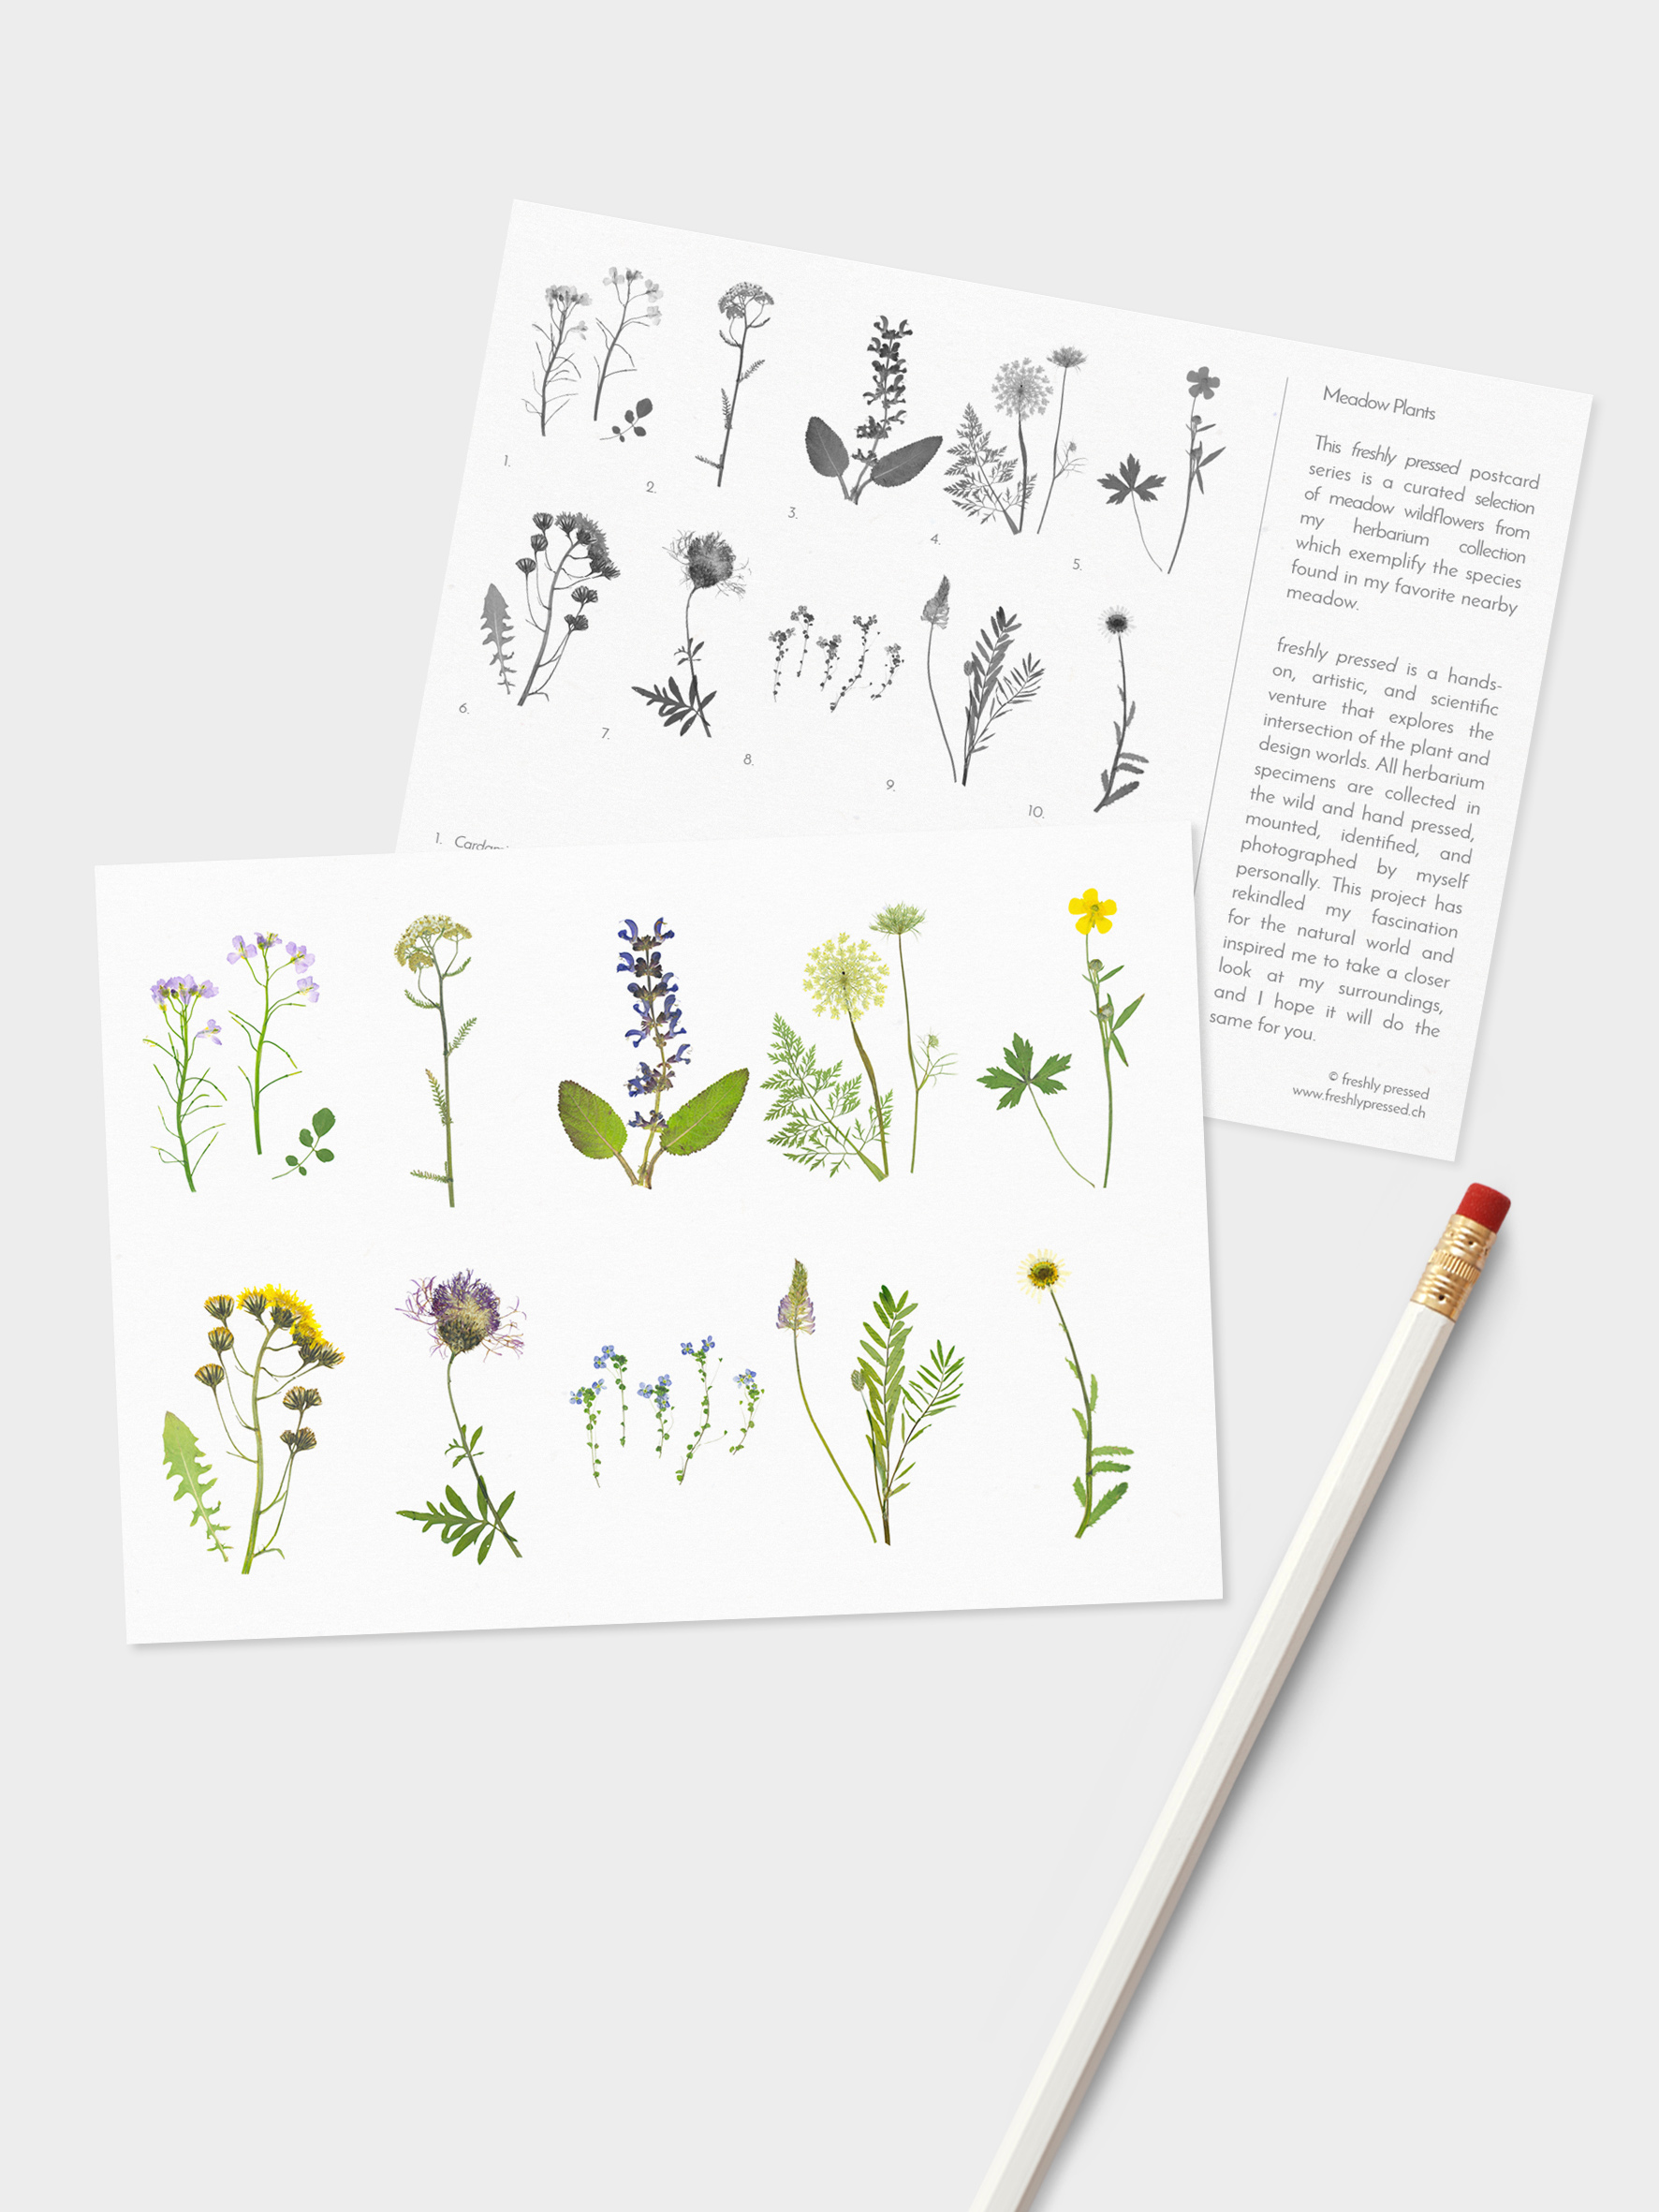 postcards - Choose your favorite theme for a 10-pack of informational postcards, each featuring a curated selection of plants and wildflowers from my herbarium collection.